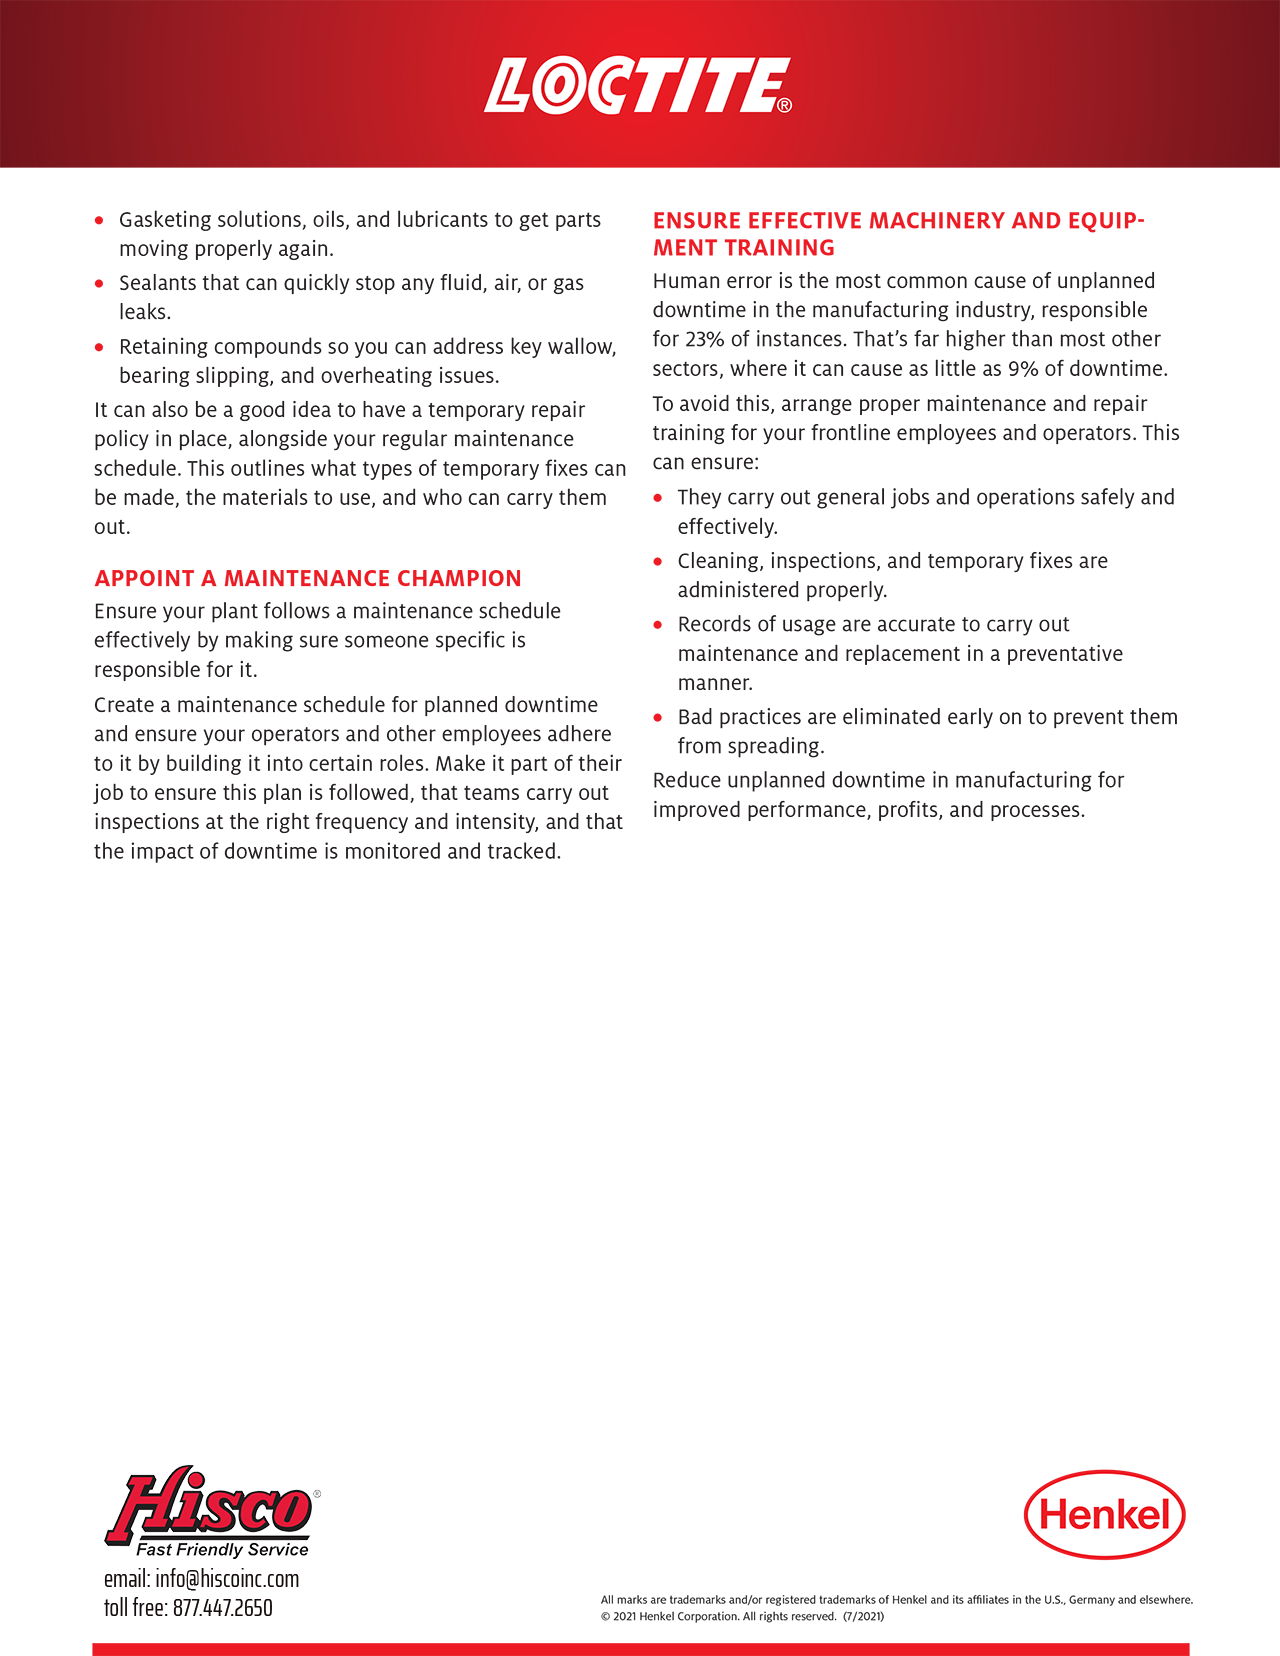 How to Reduce Unplanned Downtime with Effective Maintenance and Repairs p3